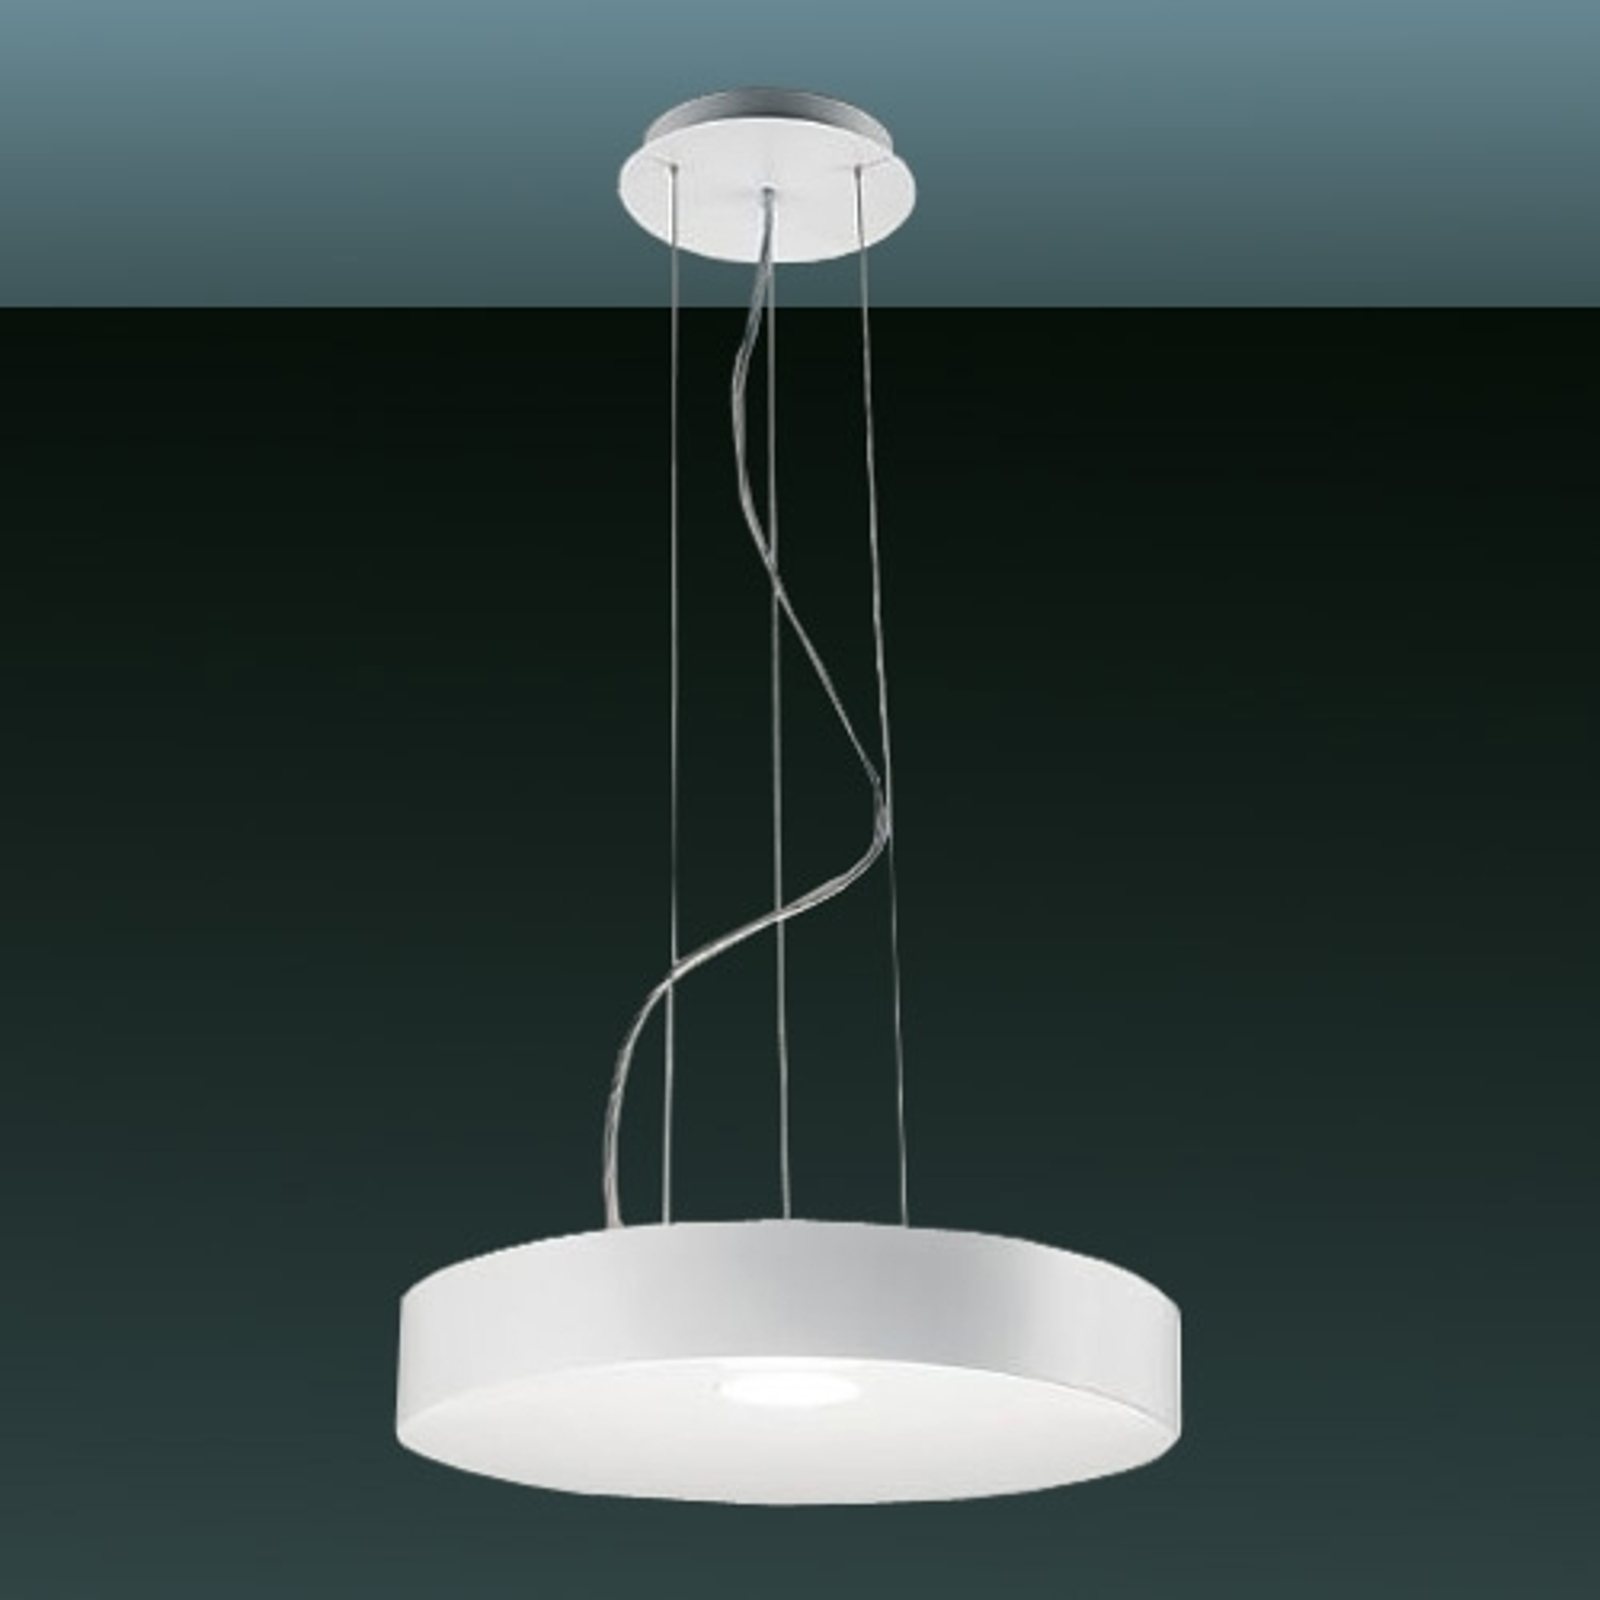 LED hanging light Crater DI, warm white_3042027_1